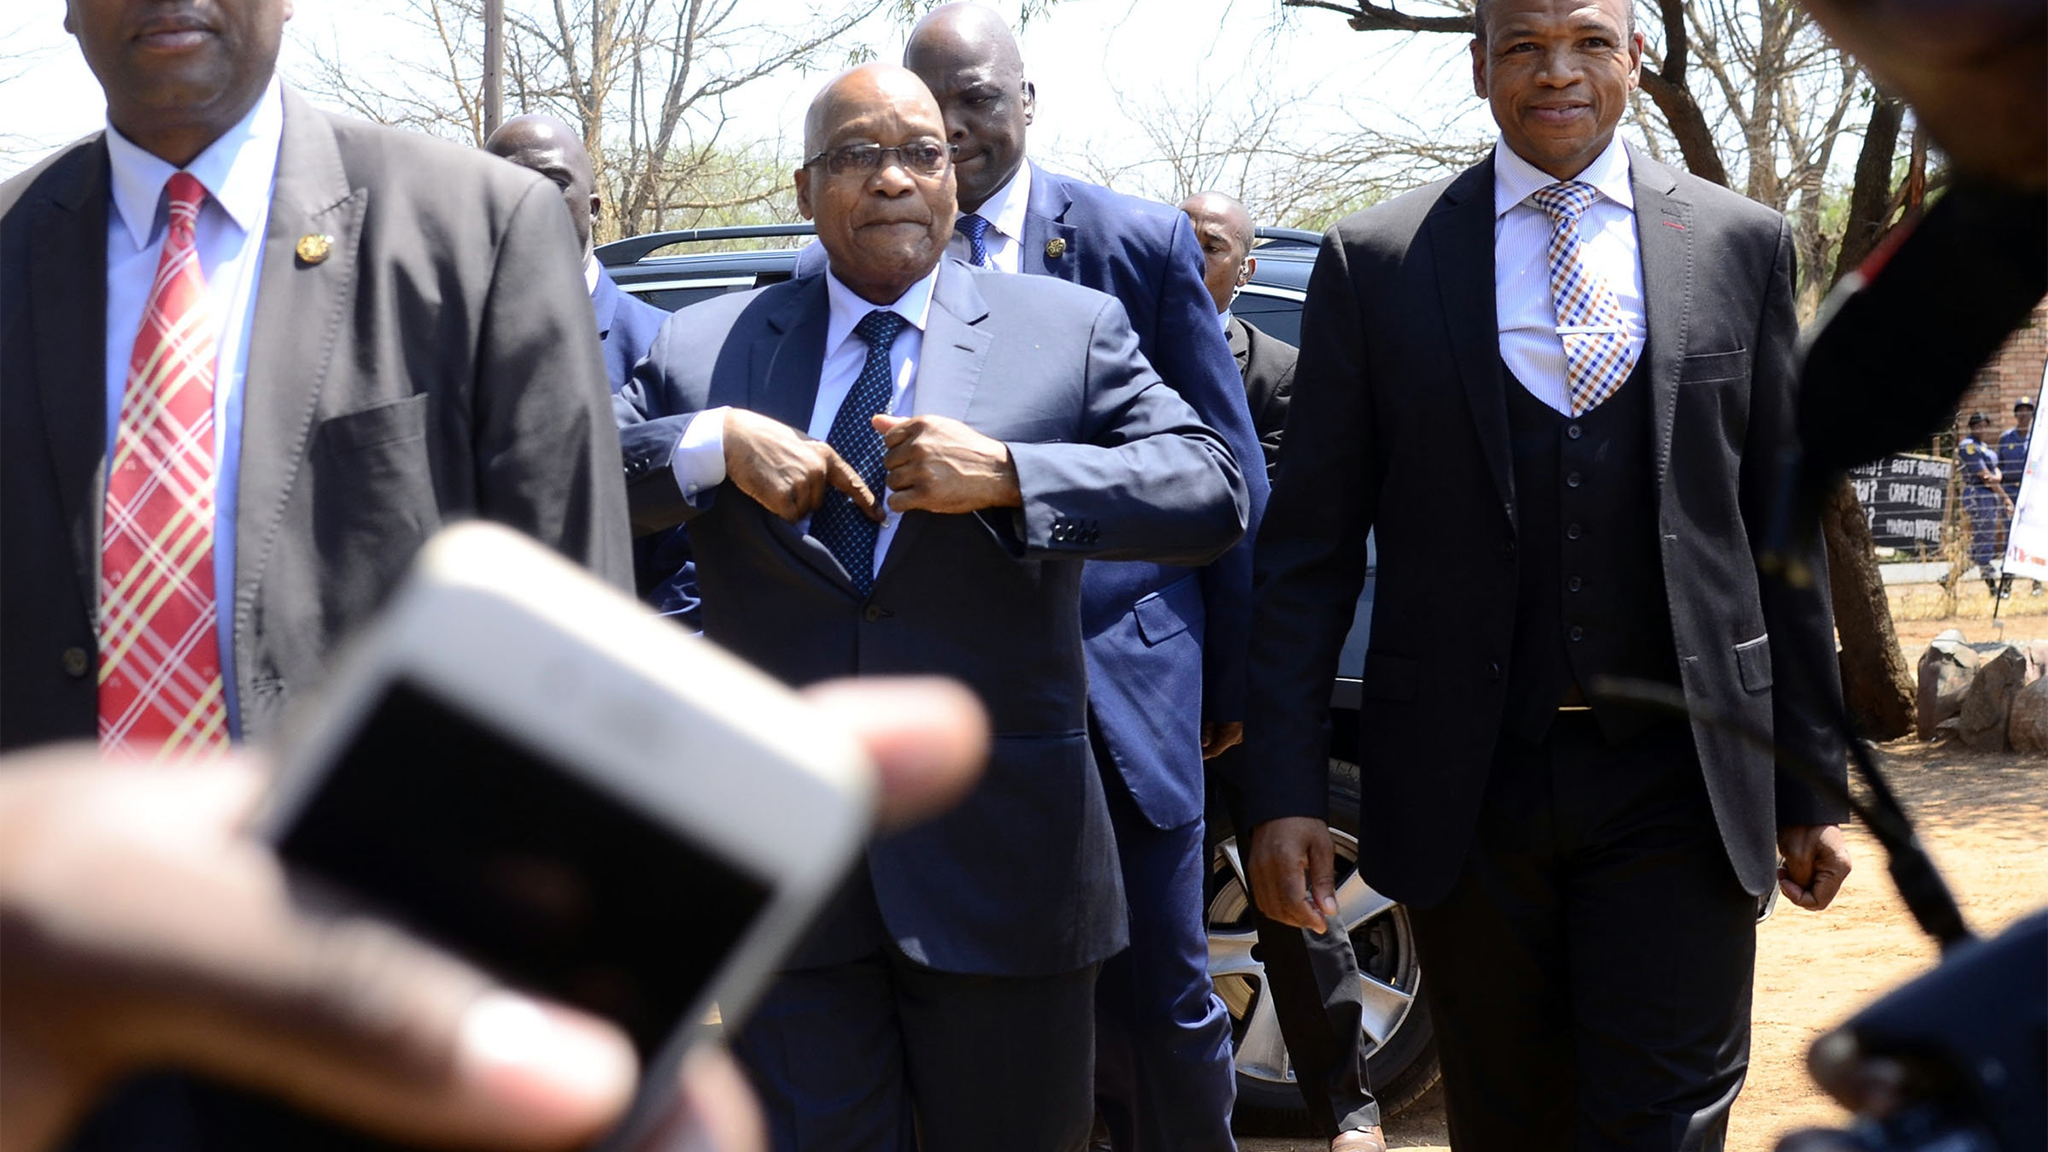 The Zuma files: how cronyism captured South Africa